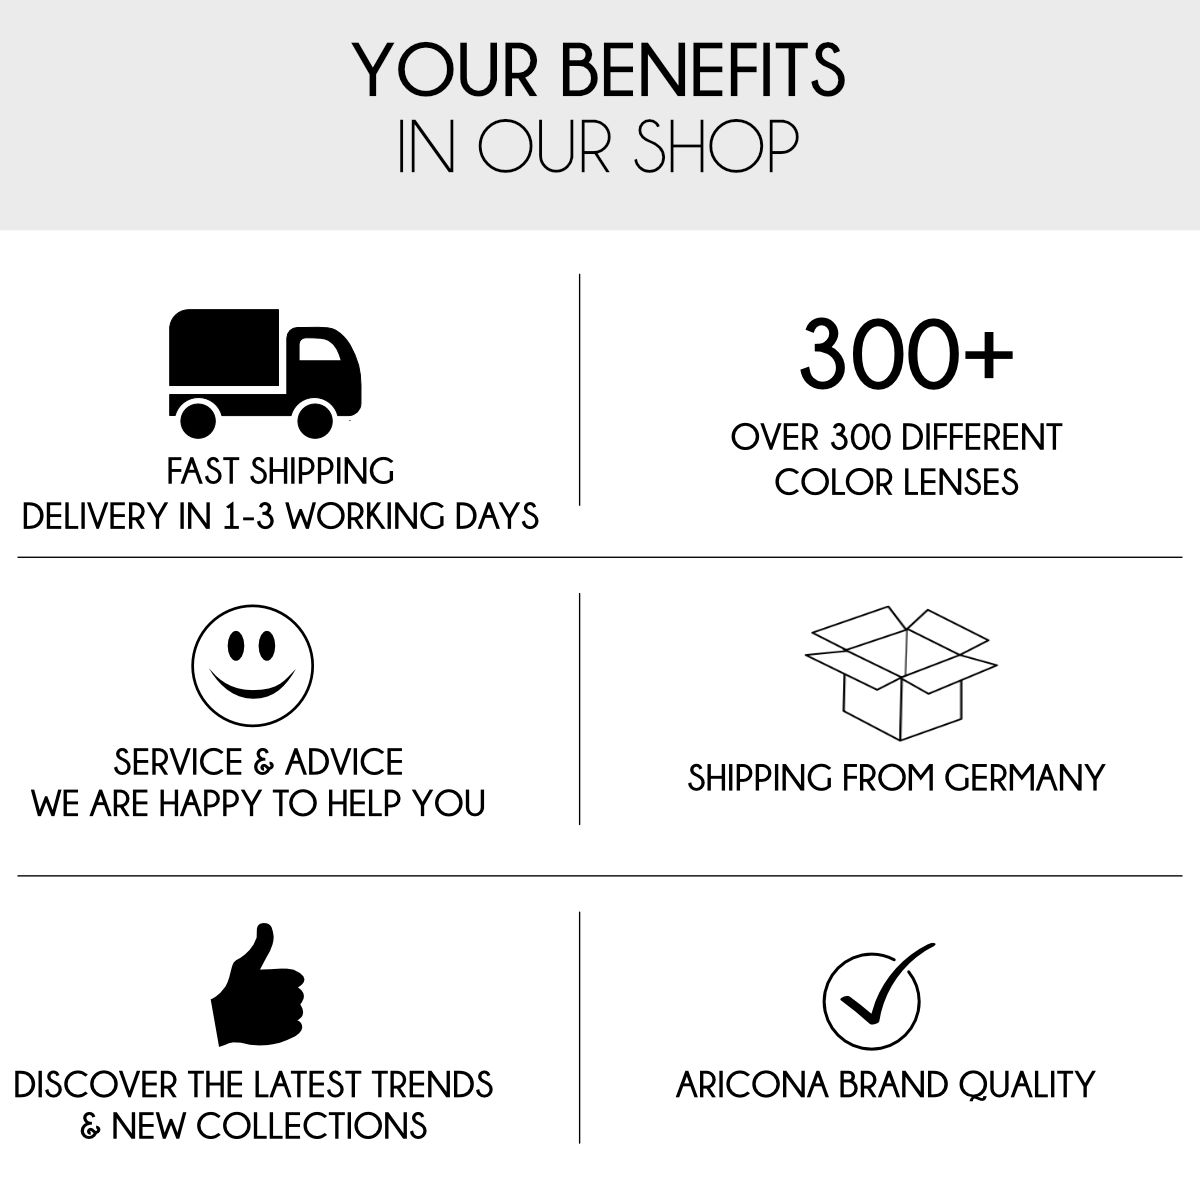 Benefits aricona